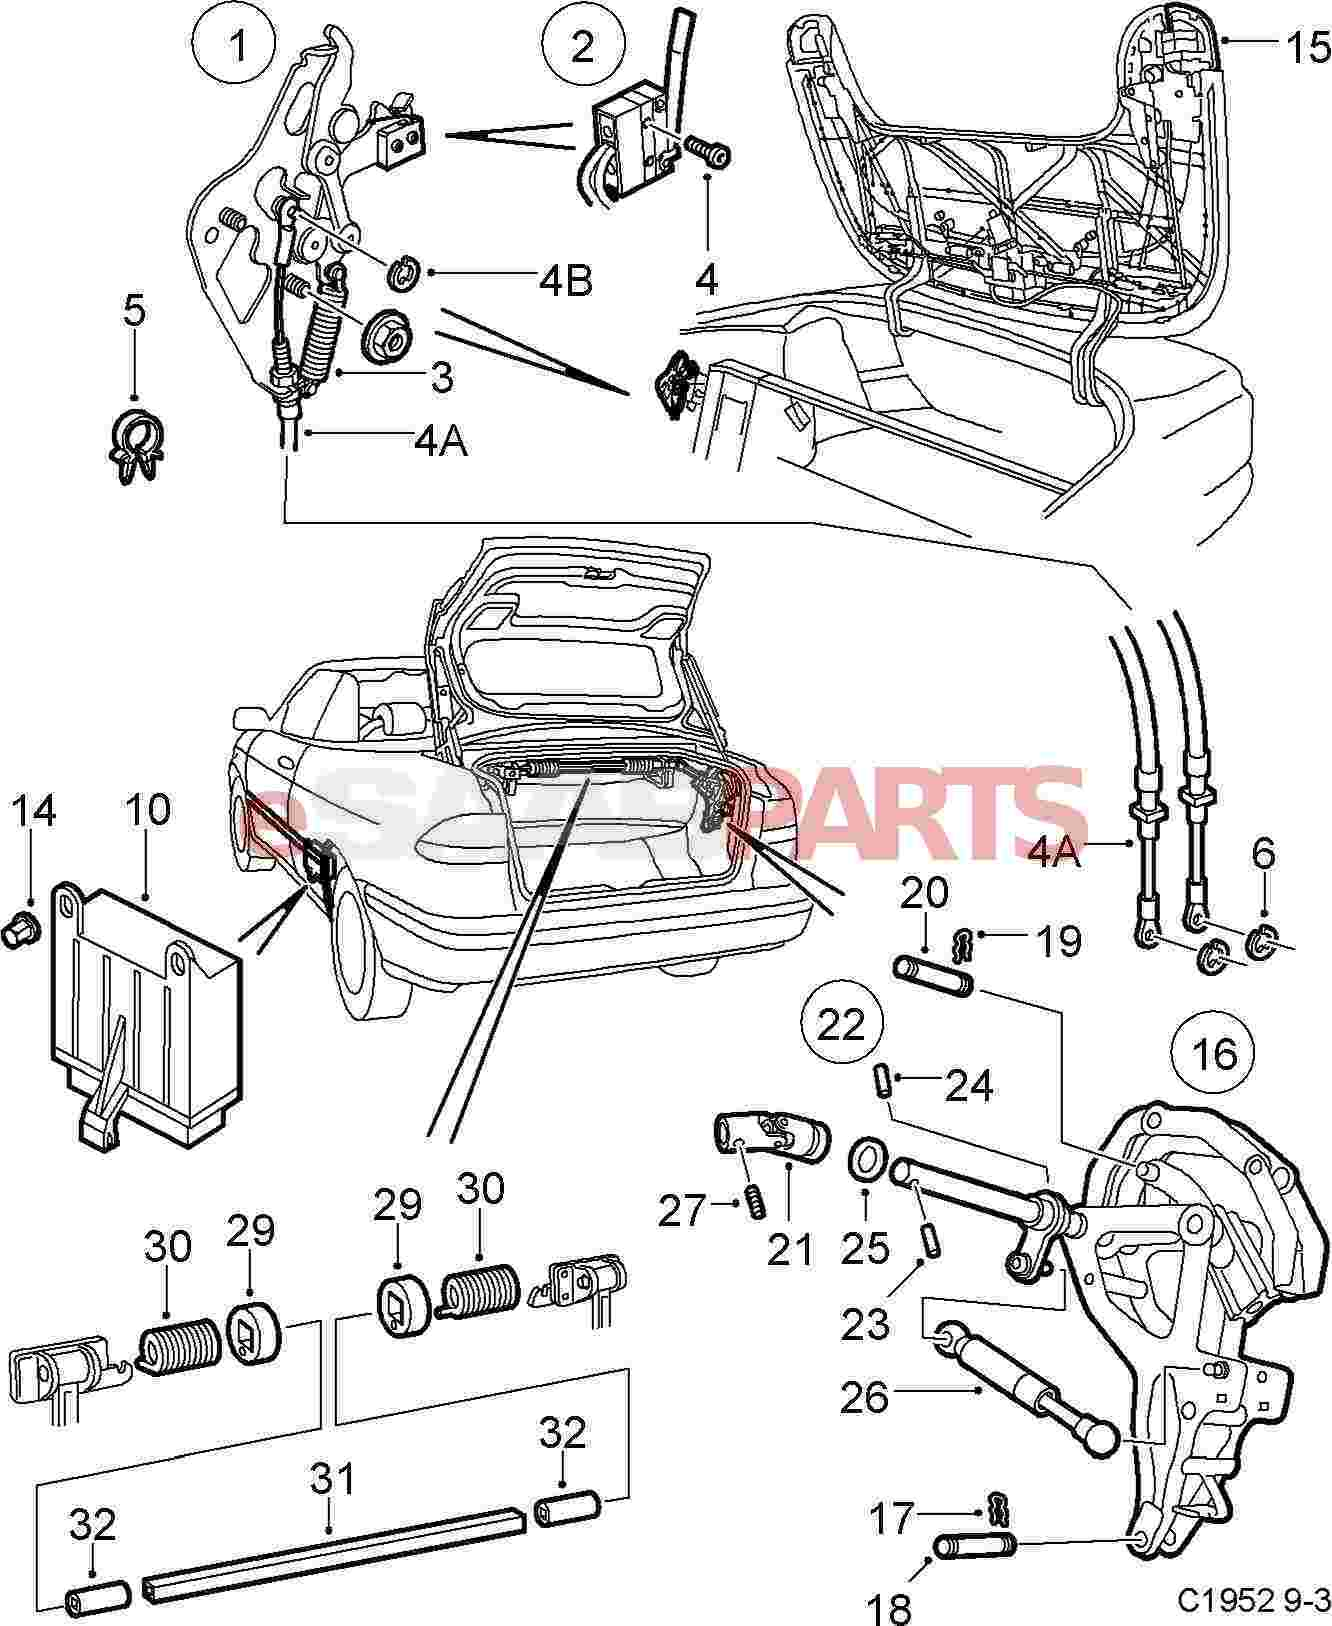 2003 Saab Parts Diagram • Wiring Diagram For Free